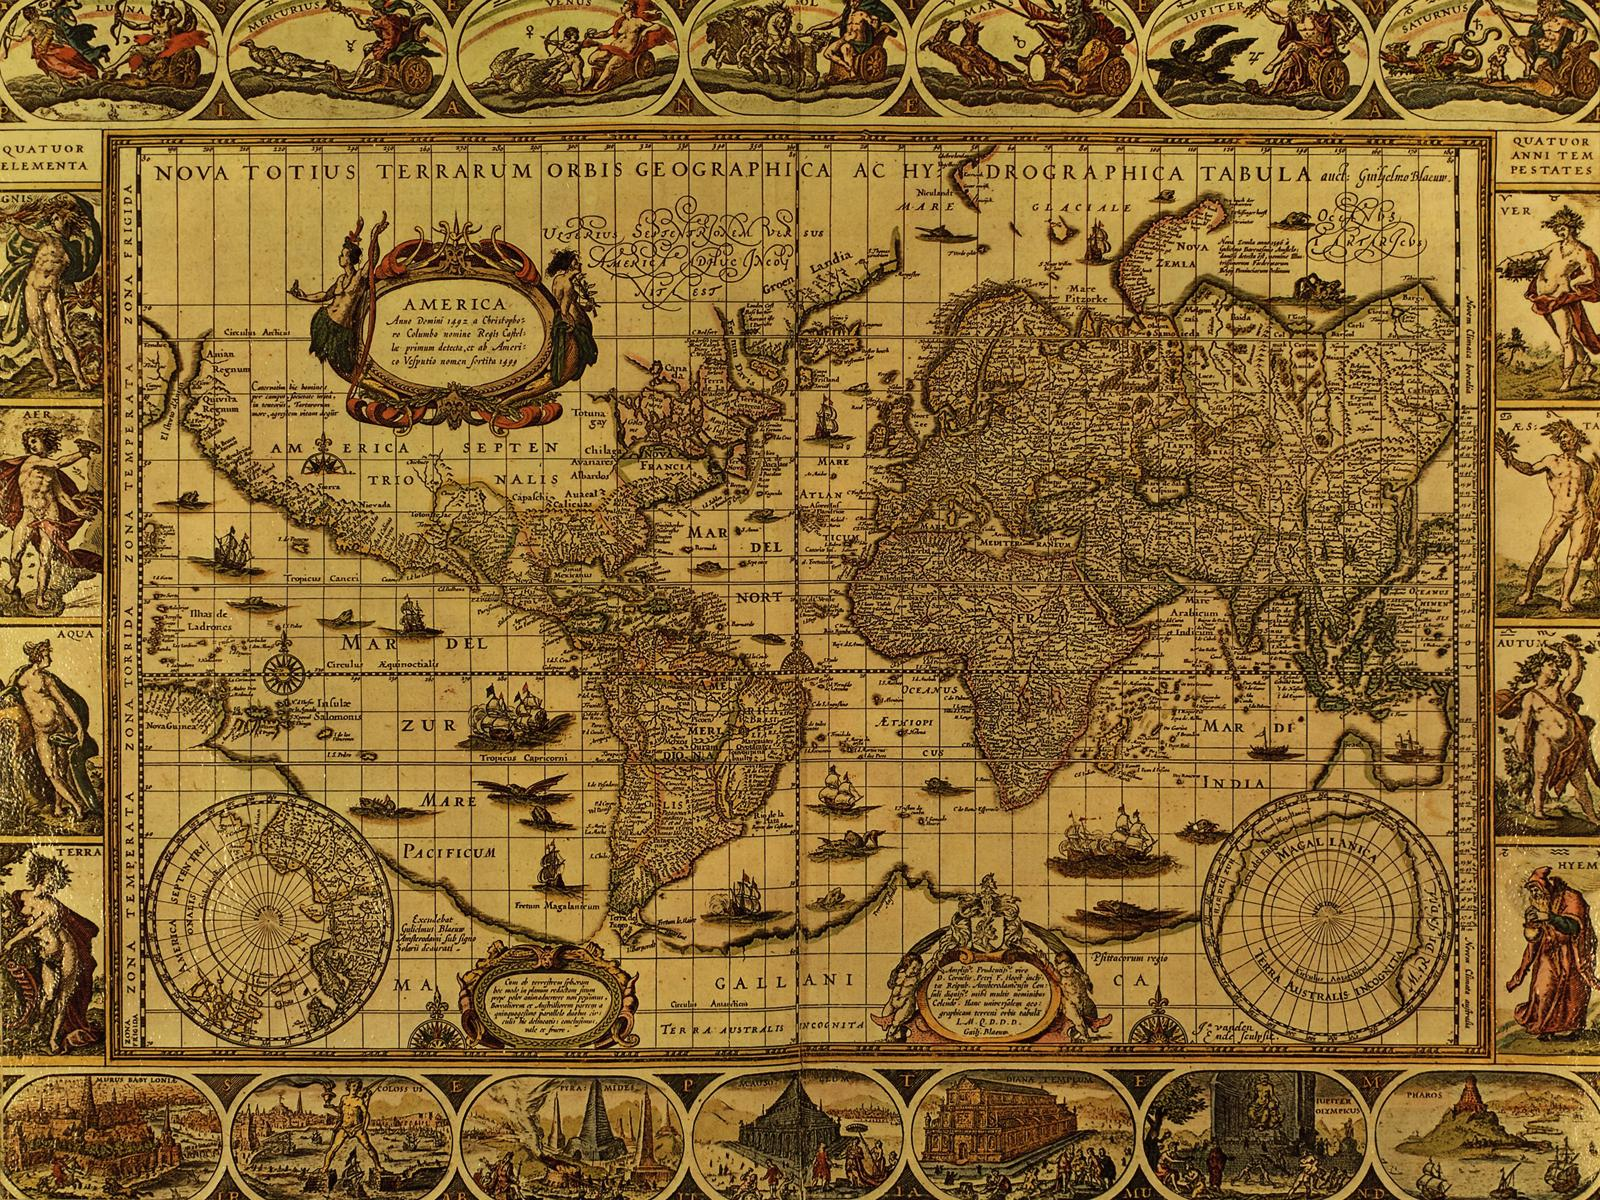 Treasure map wallpaper sf wallpaper vintage map wallpapers wallpaper cave gumiabroncs Gallery